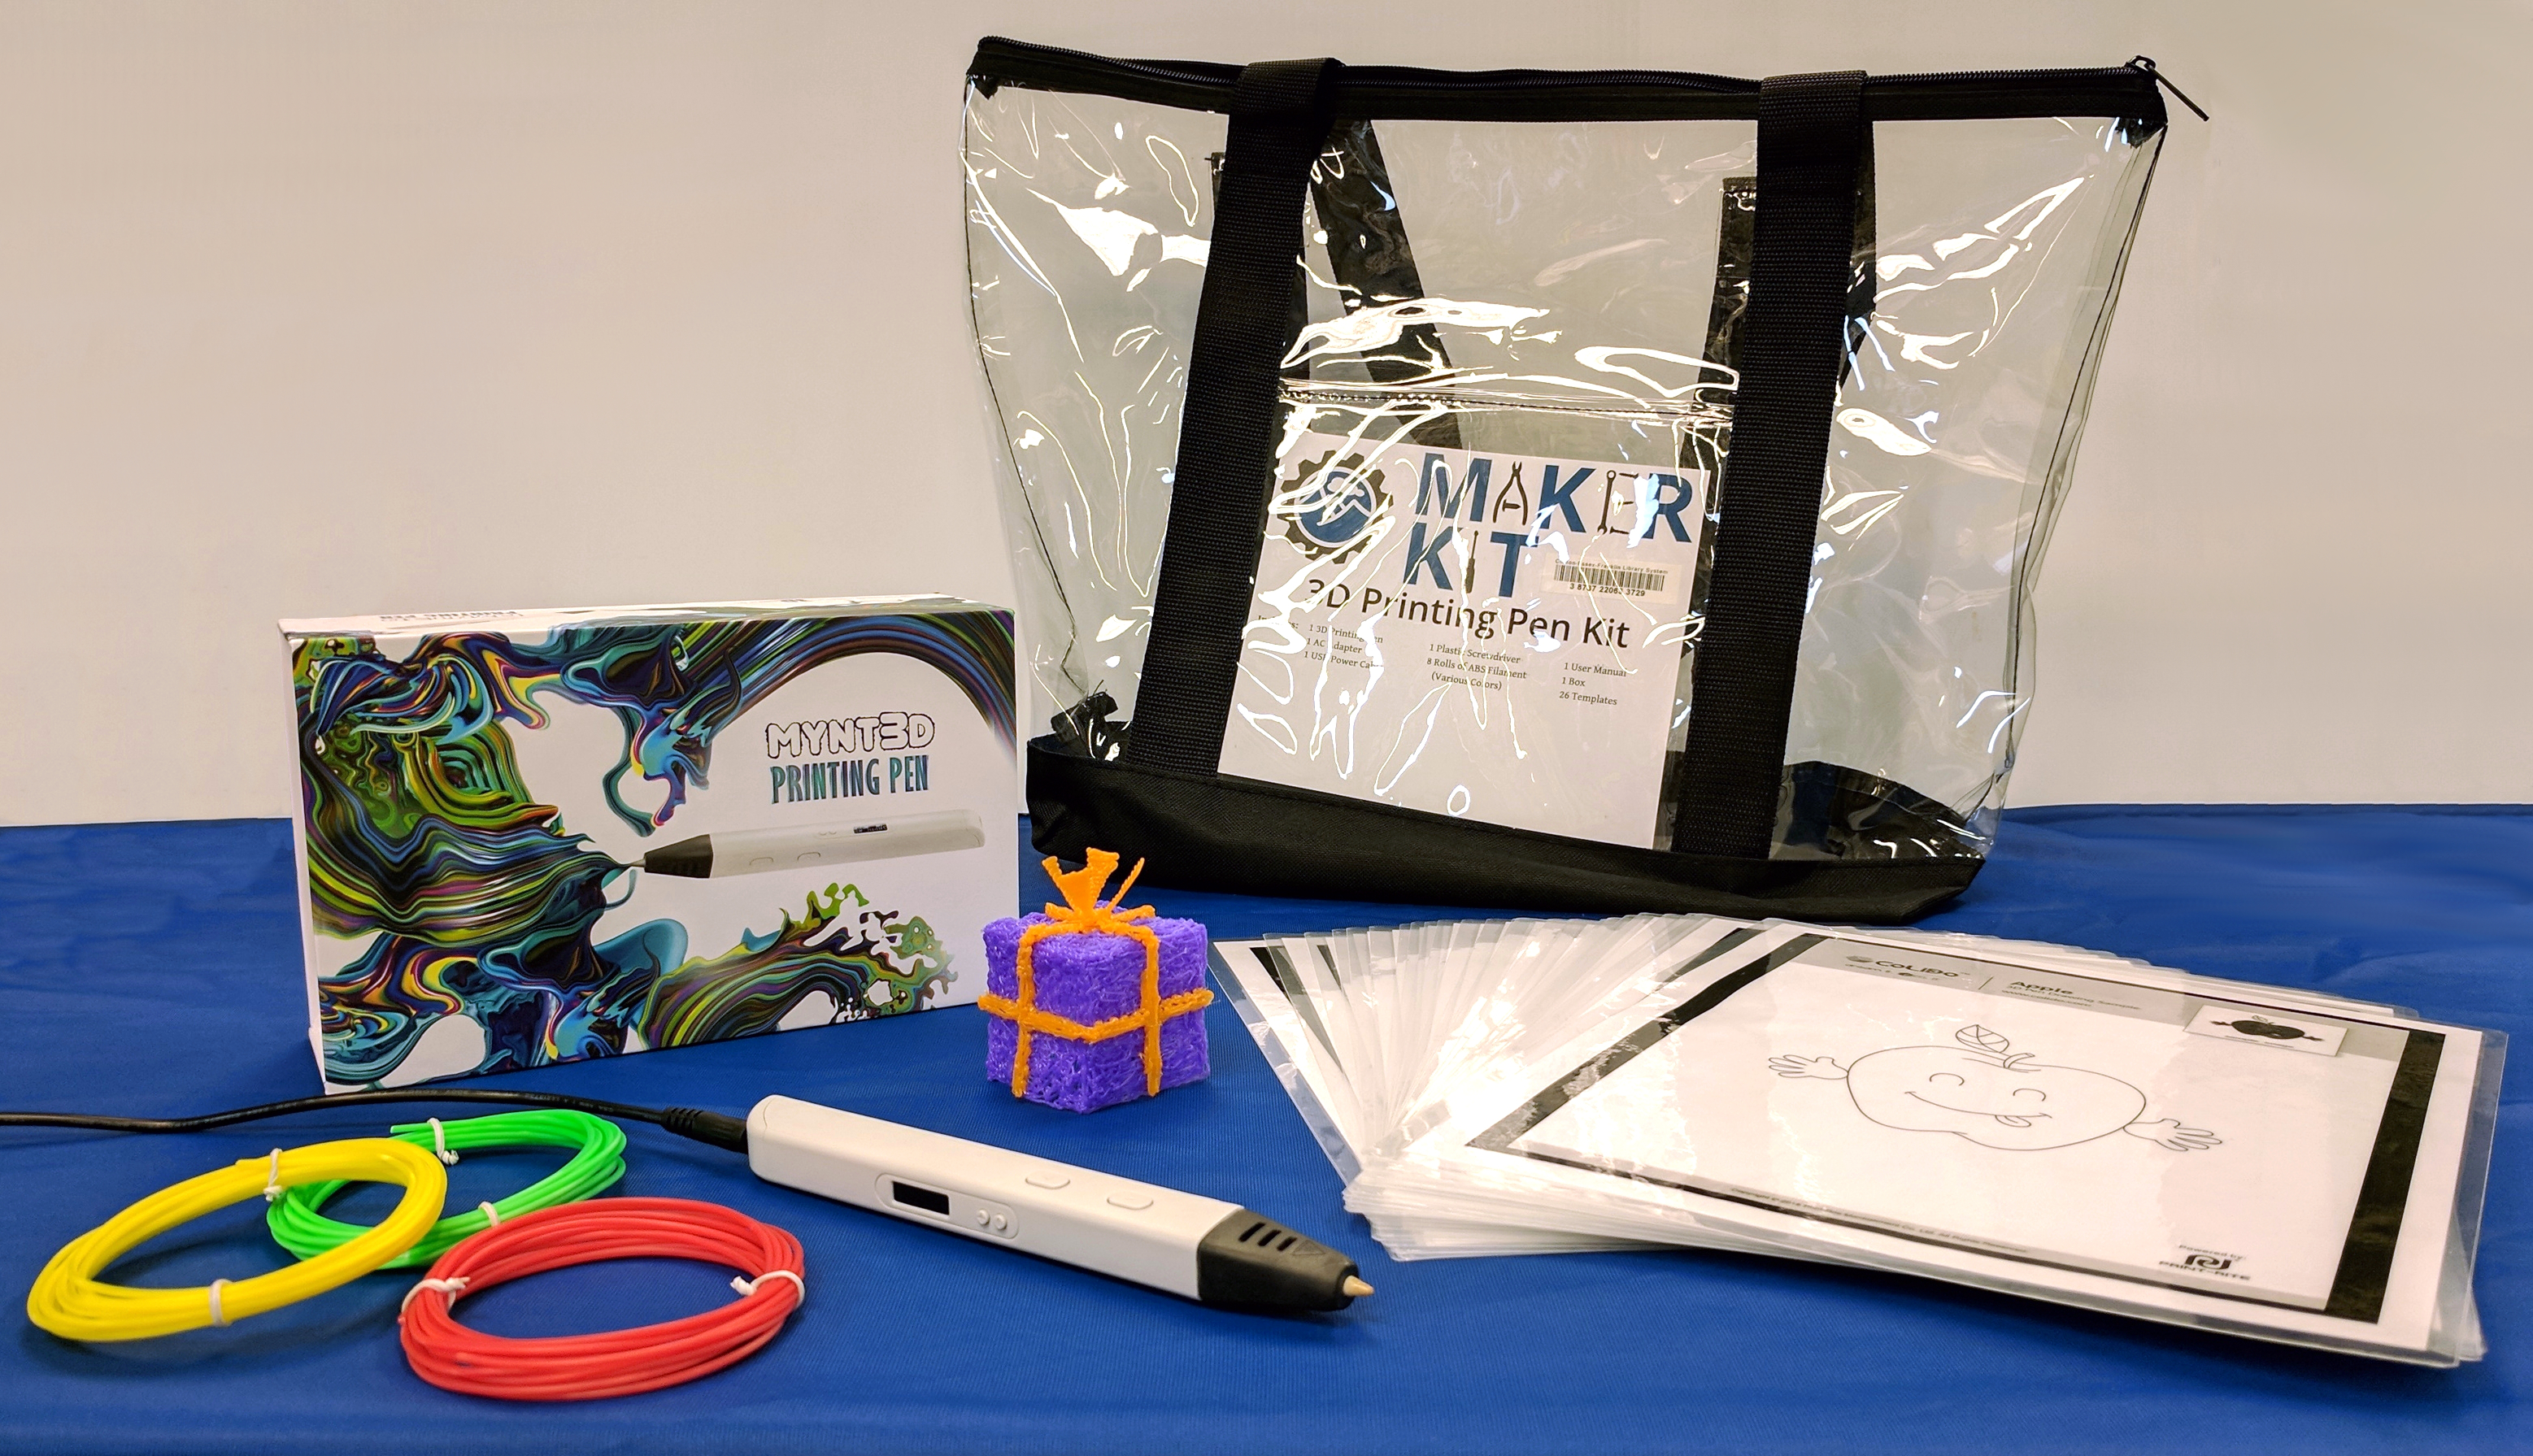 Member Profile Get Kitted Out Cefls Creates Circulating Kits For Snap Circuits Space Battle Kit Maker